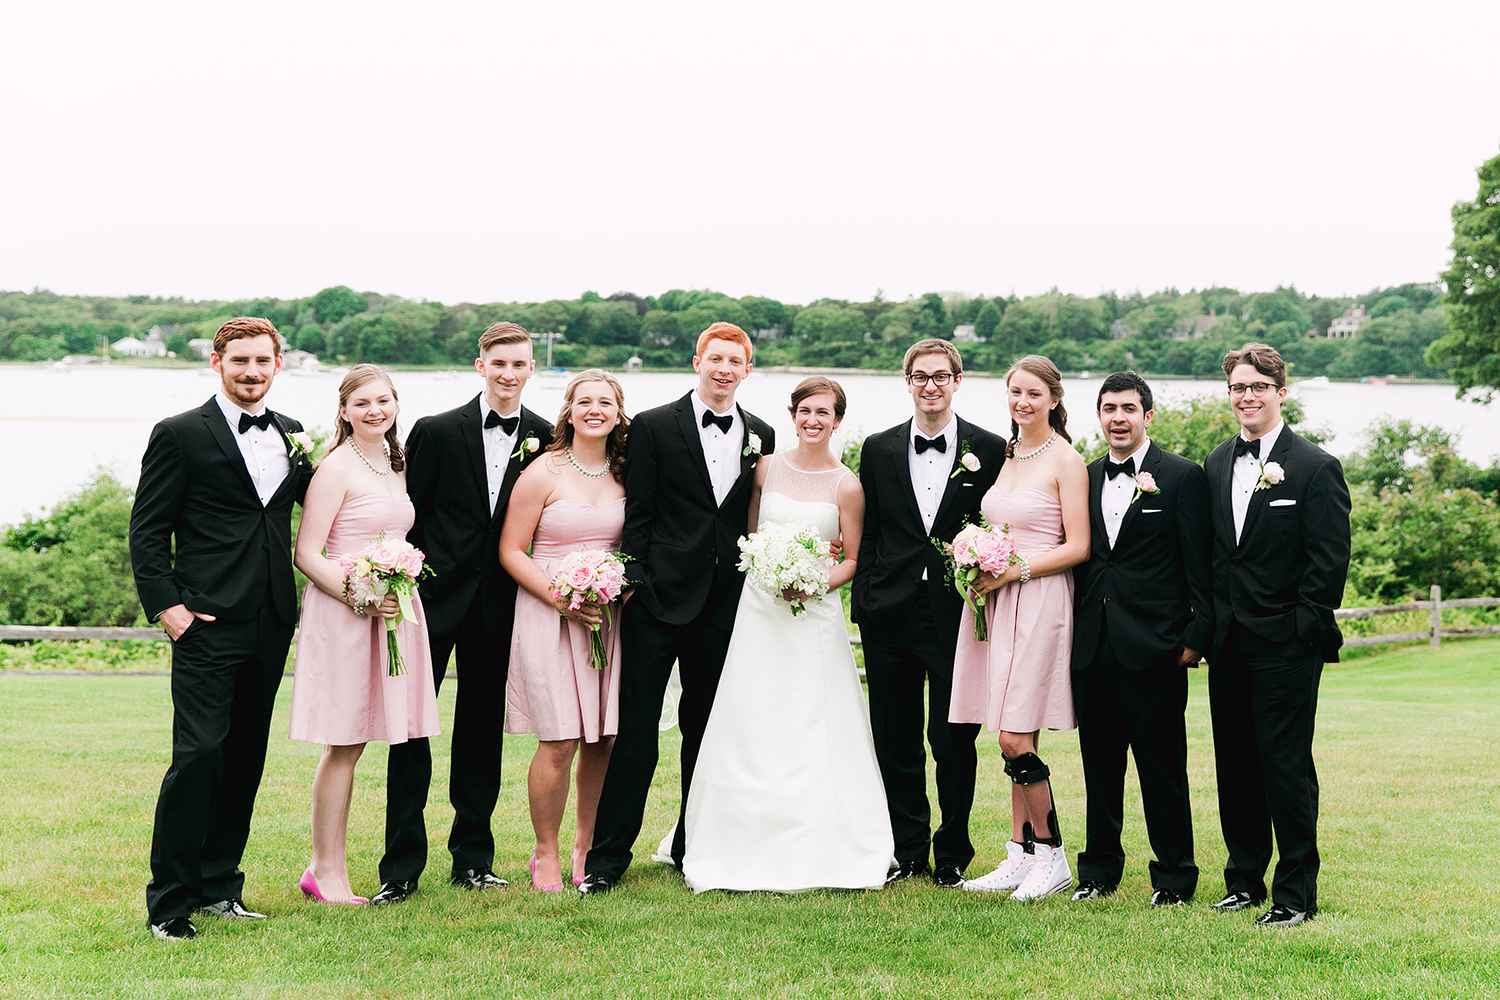 oyster_harbors_wedding_55.jpg